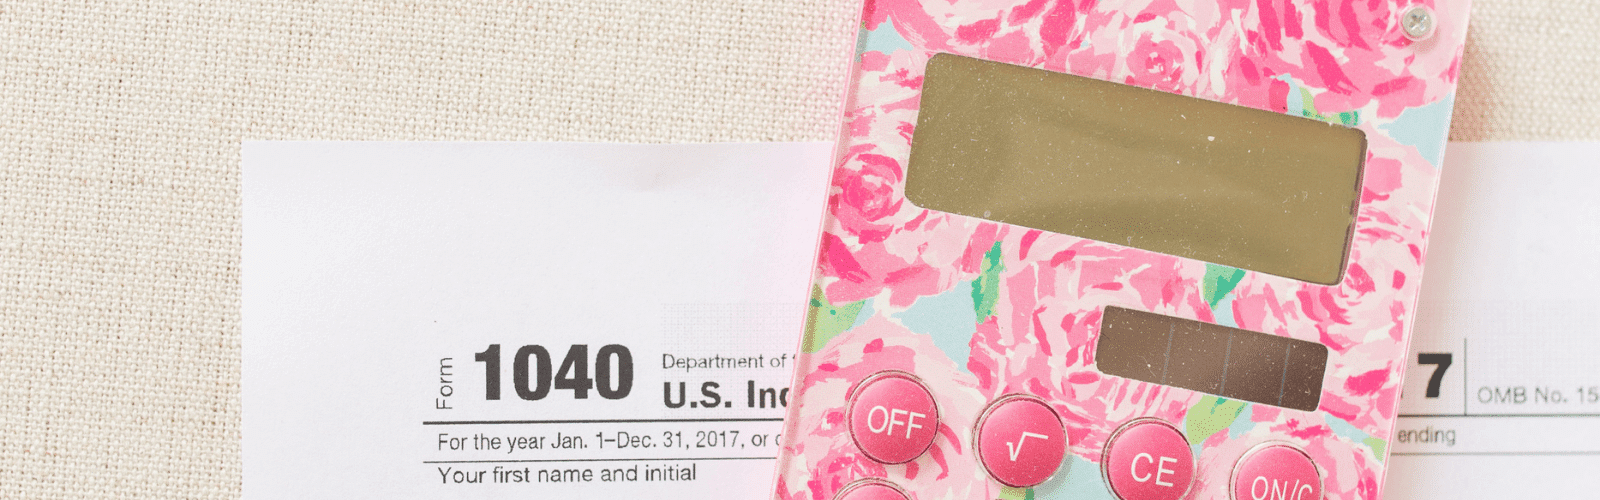 Miscalculation on Your 2020 Form 1040?